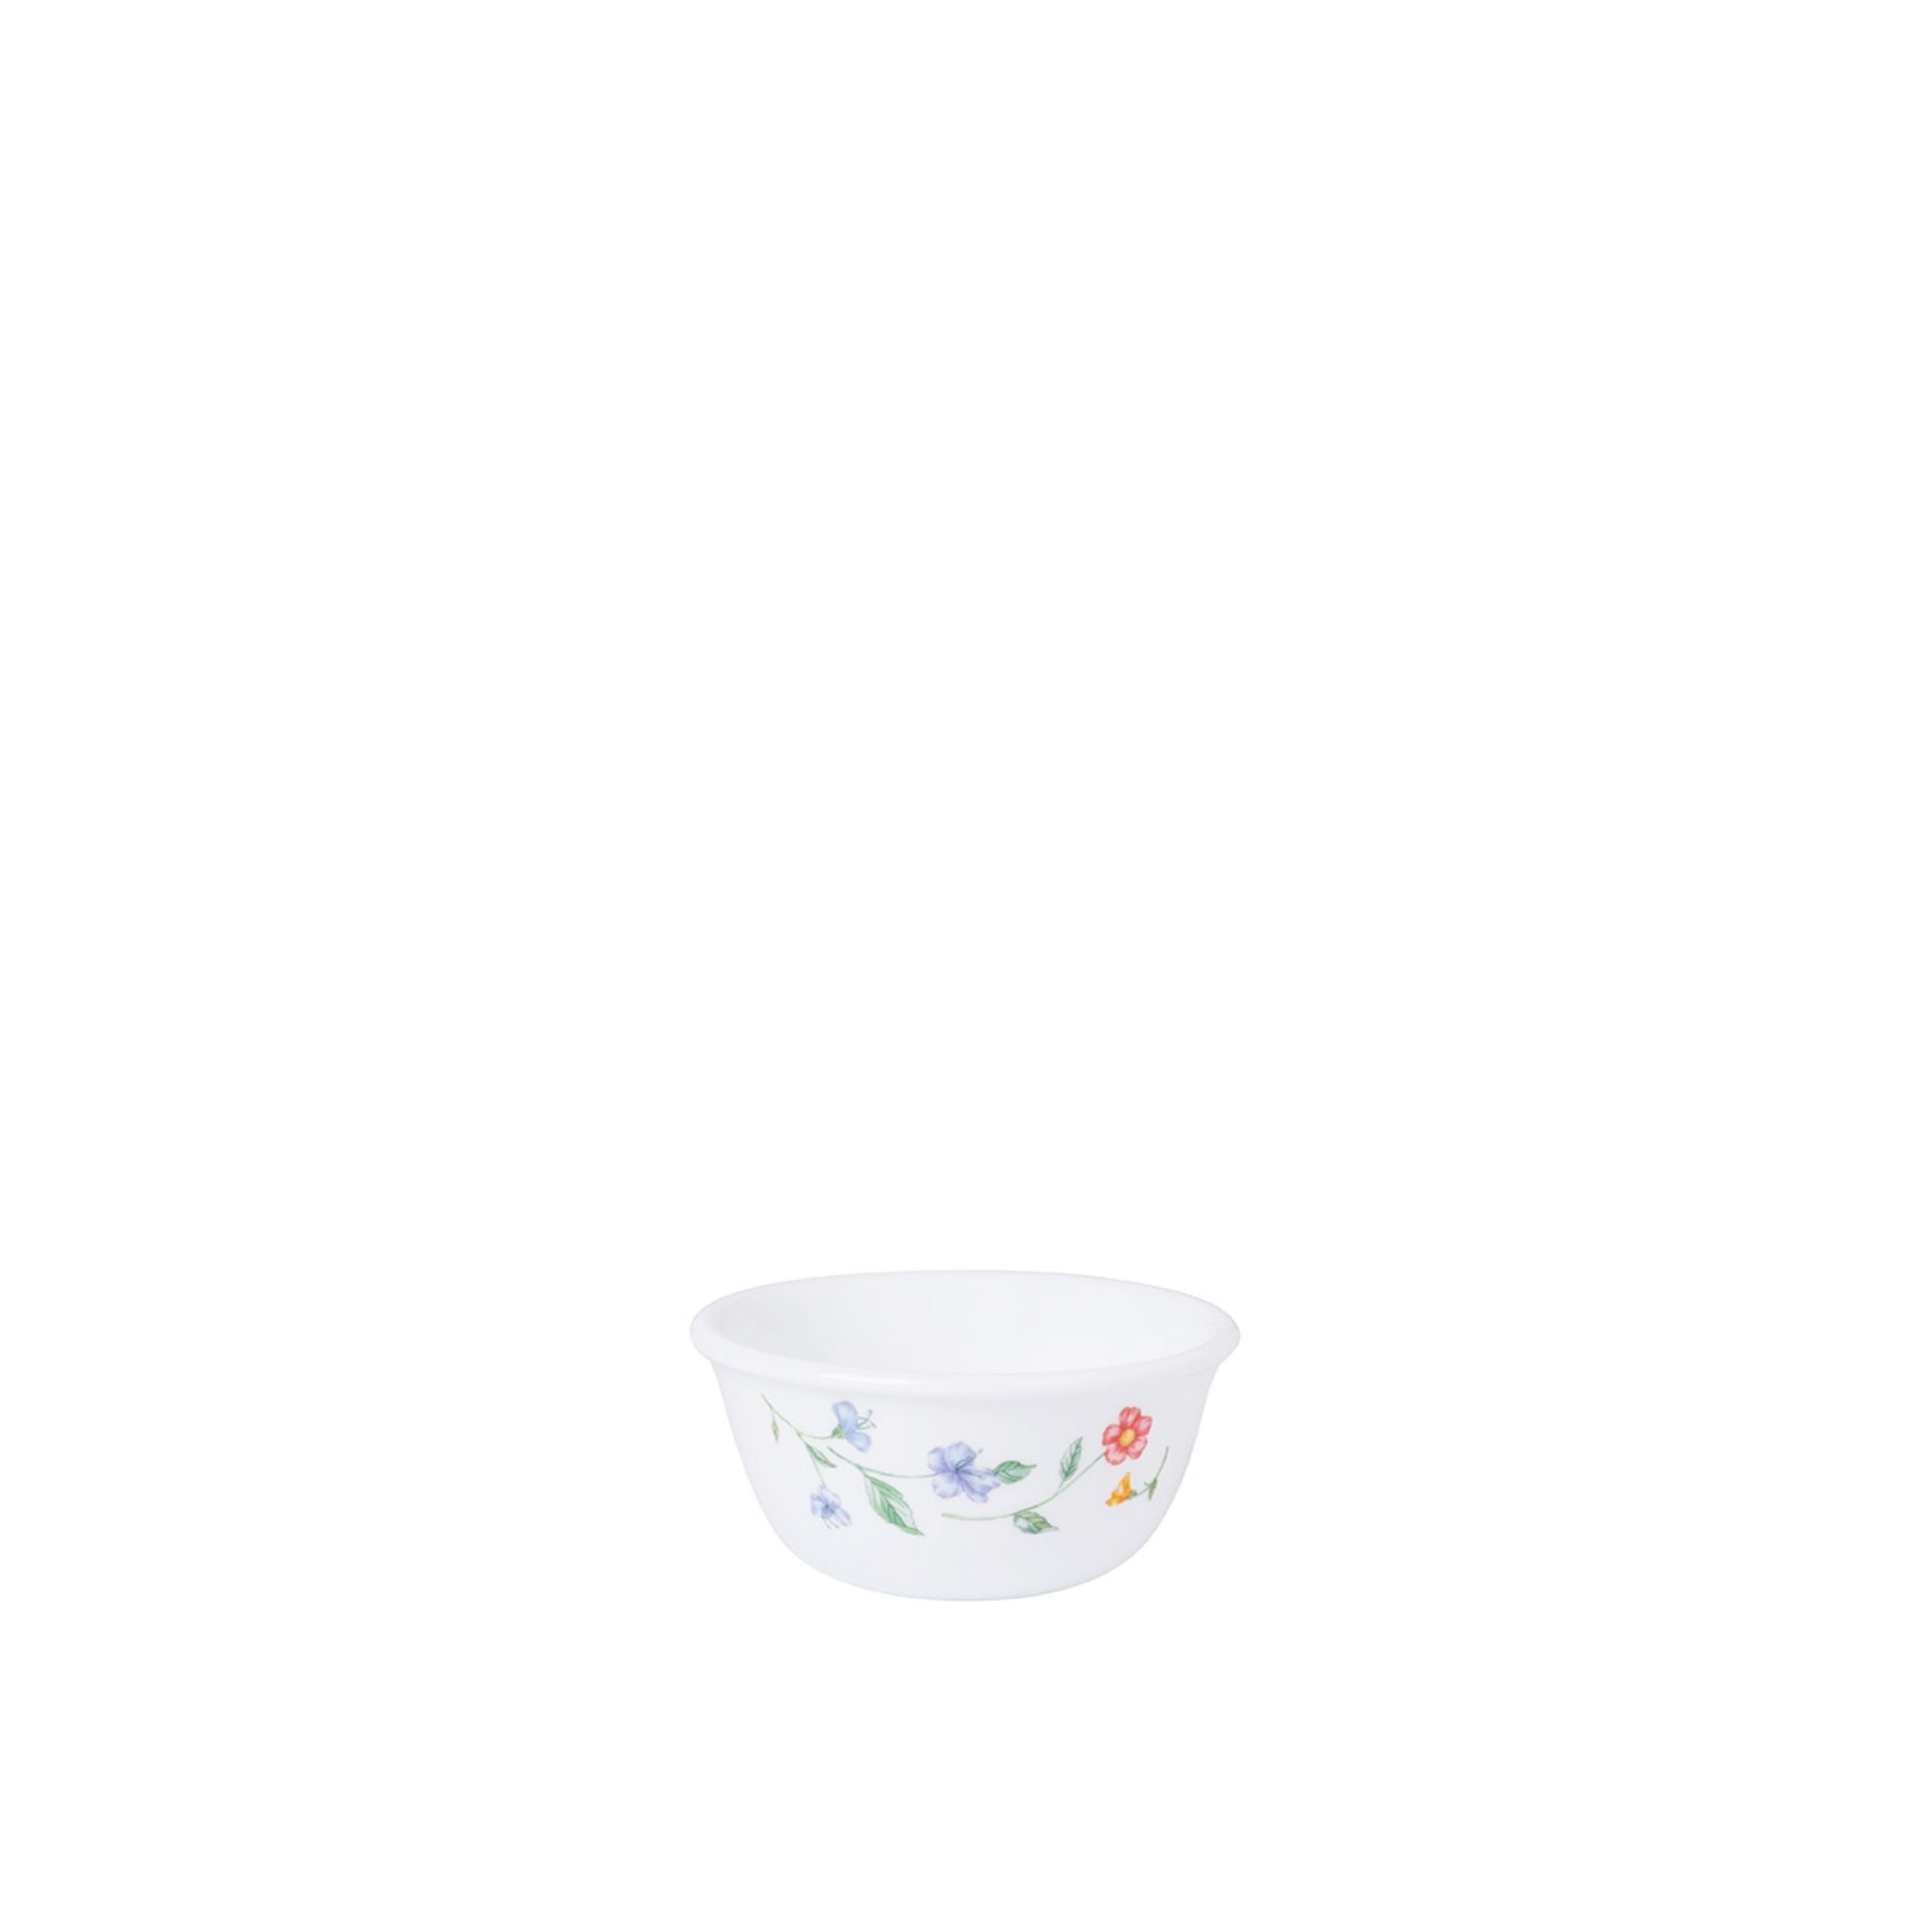 Corelle 177ml Ramekin Bowl - Purun Flower